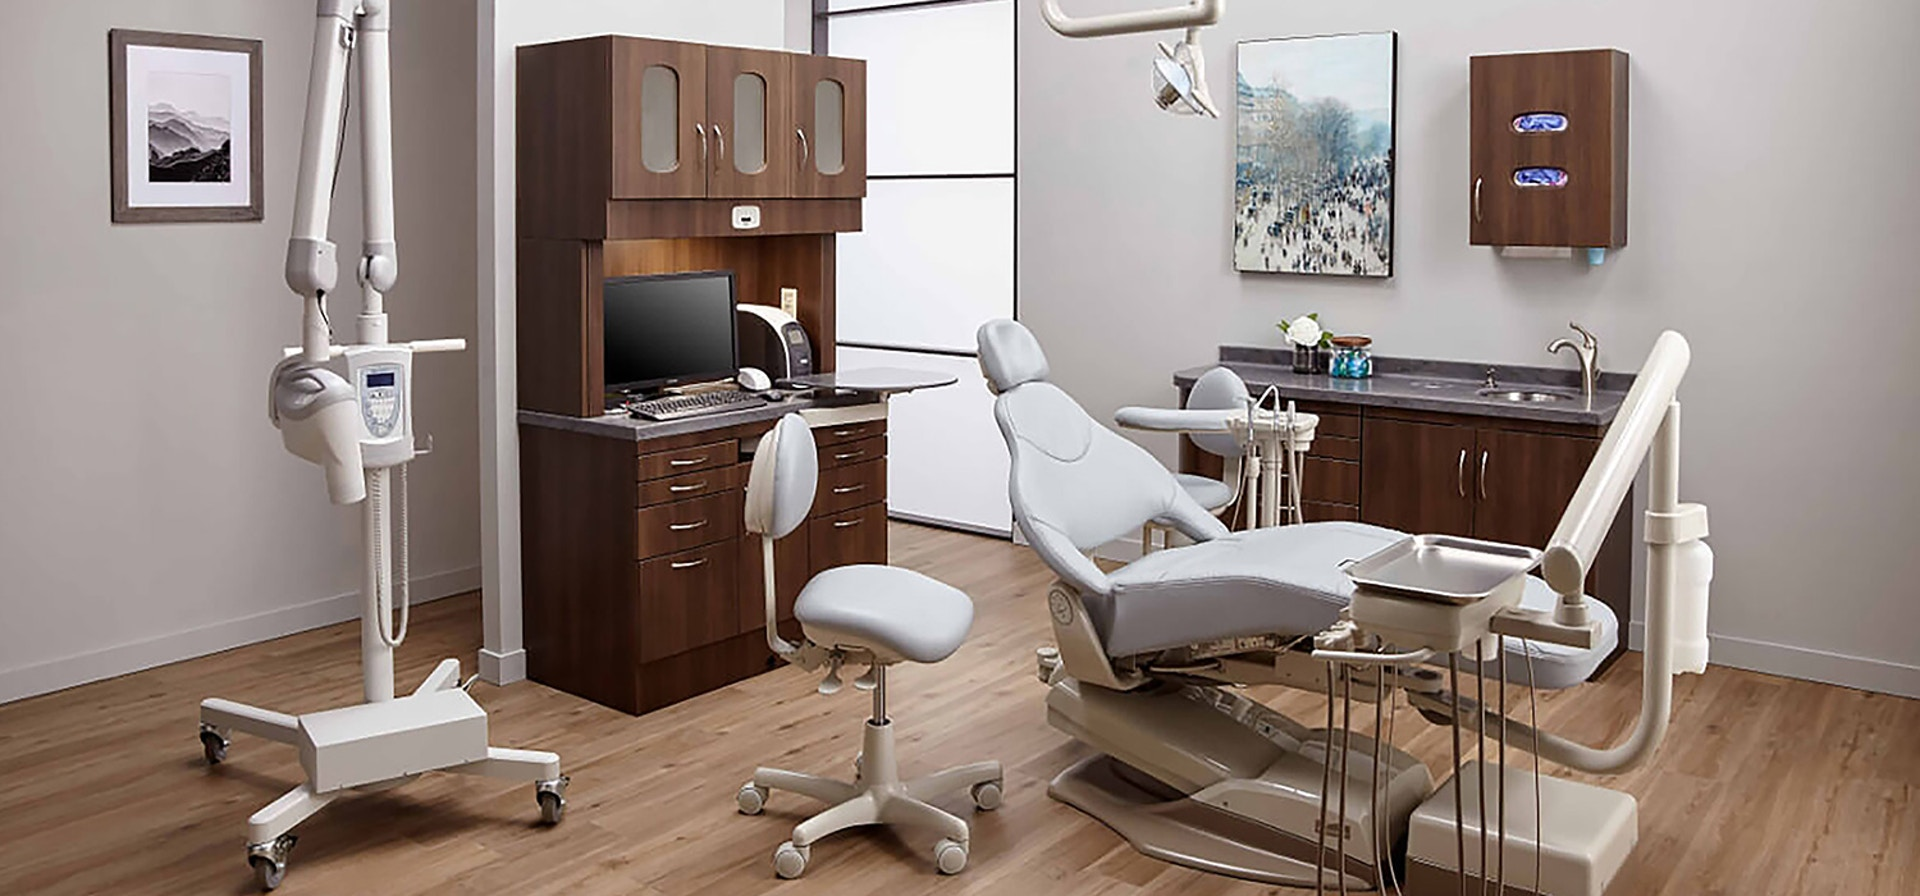 A modern dentist office featuring dental equipment and technology designed by Midmark